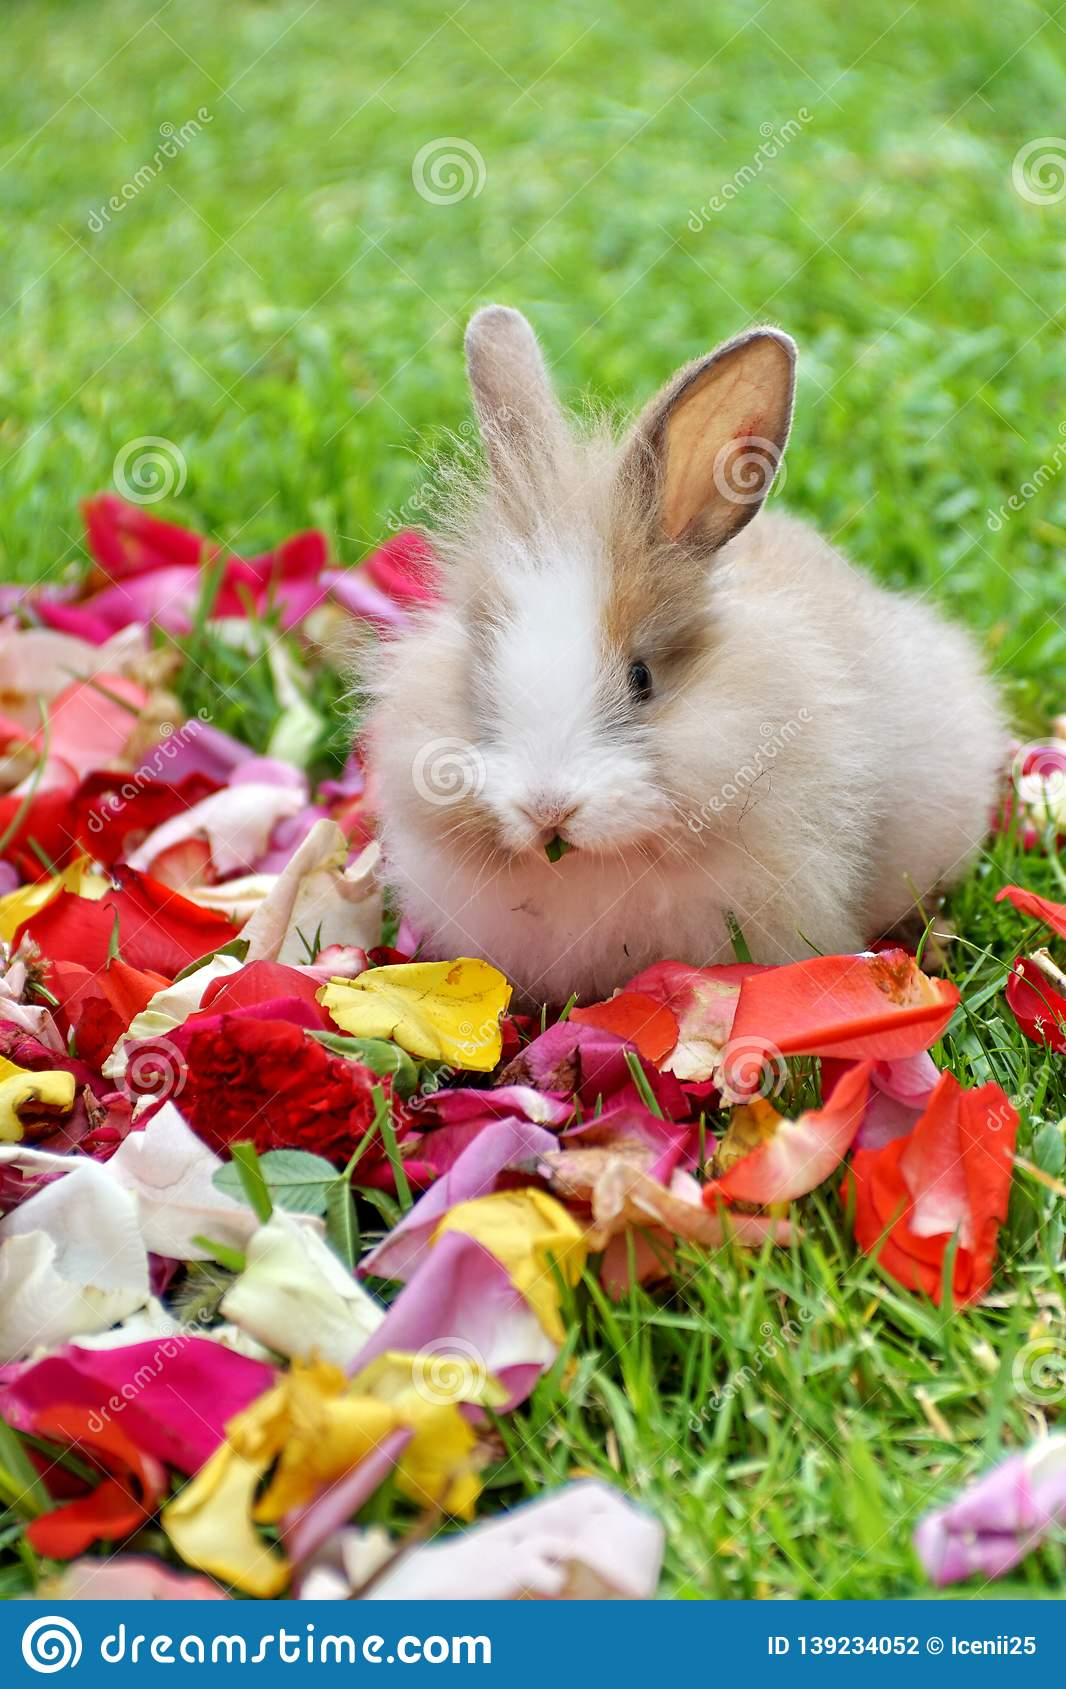 Rabbit in rose petals